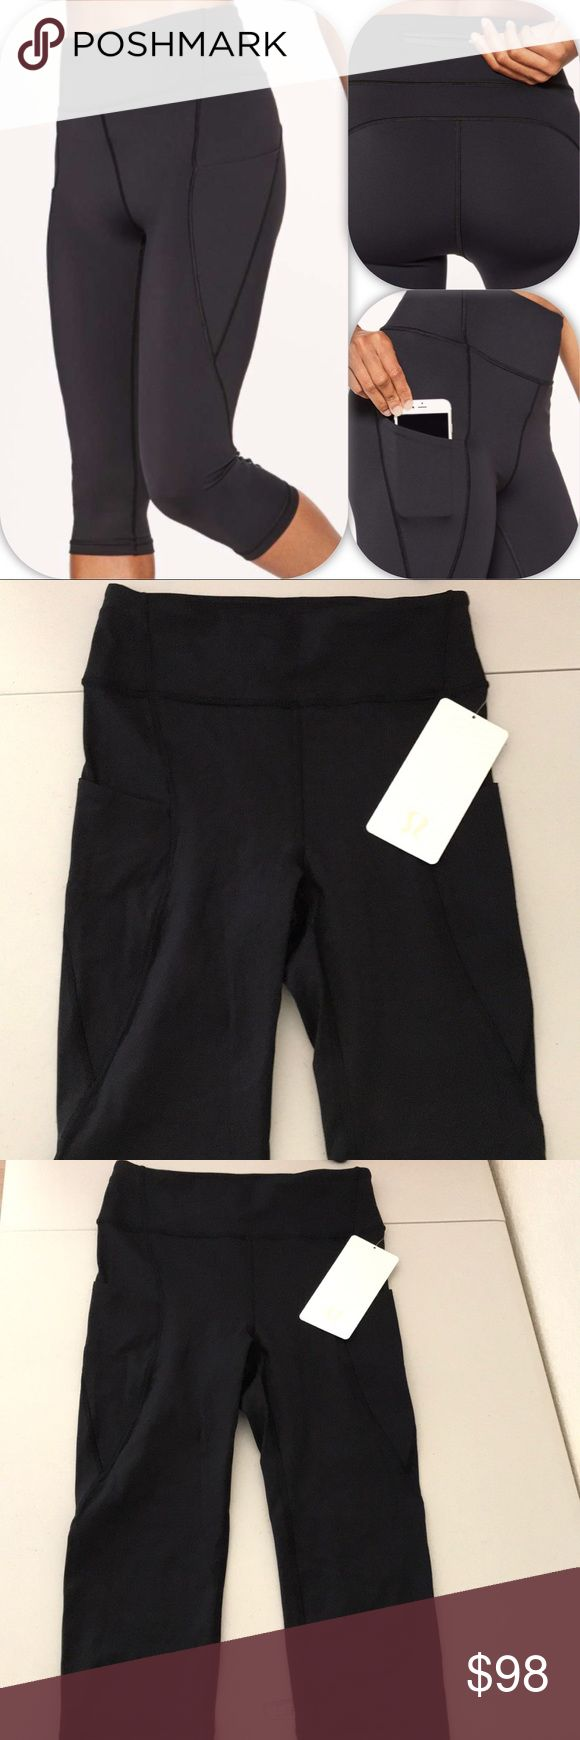 NWT BLK LULULEMON BREAK FREE CROP - - Size 6 Brand: Lululemon Athletica break Free Crop         Condition: New with tag || Size 6 || Black  📌NO  TRADES  🛑NO LOWBALL OFFERS  ⛔️NO RUDE COMMENTS  🚷NO MODELING  ☀️Please don't discuss prices in the comment box. Make a reasonable offer and I'll either counter, accept or decline.   I will try to respond to all inquiries in a timely manner. Please check out the rest of my closet, I have various brands. Some new with tag, others in excellent Cd…